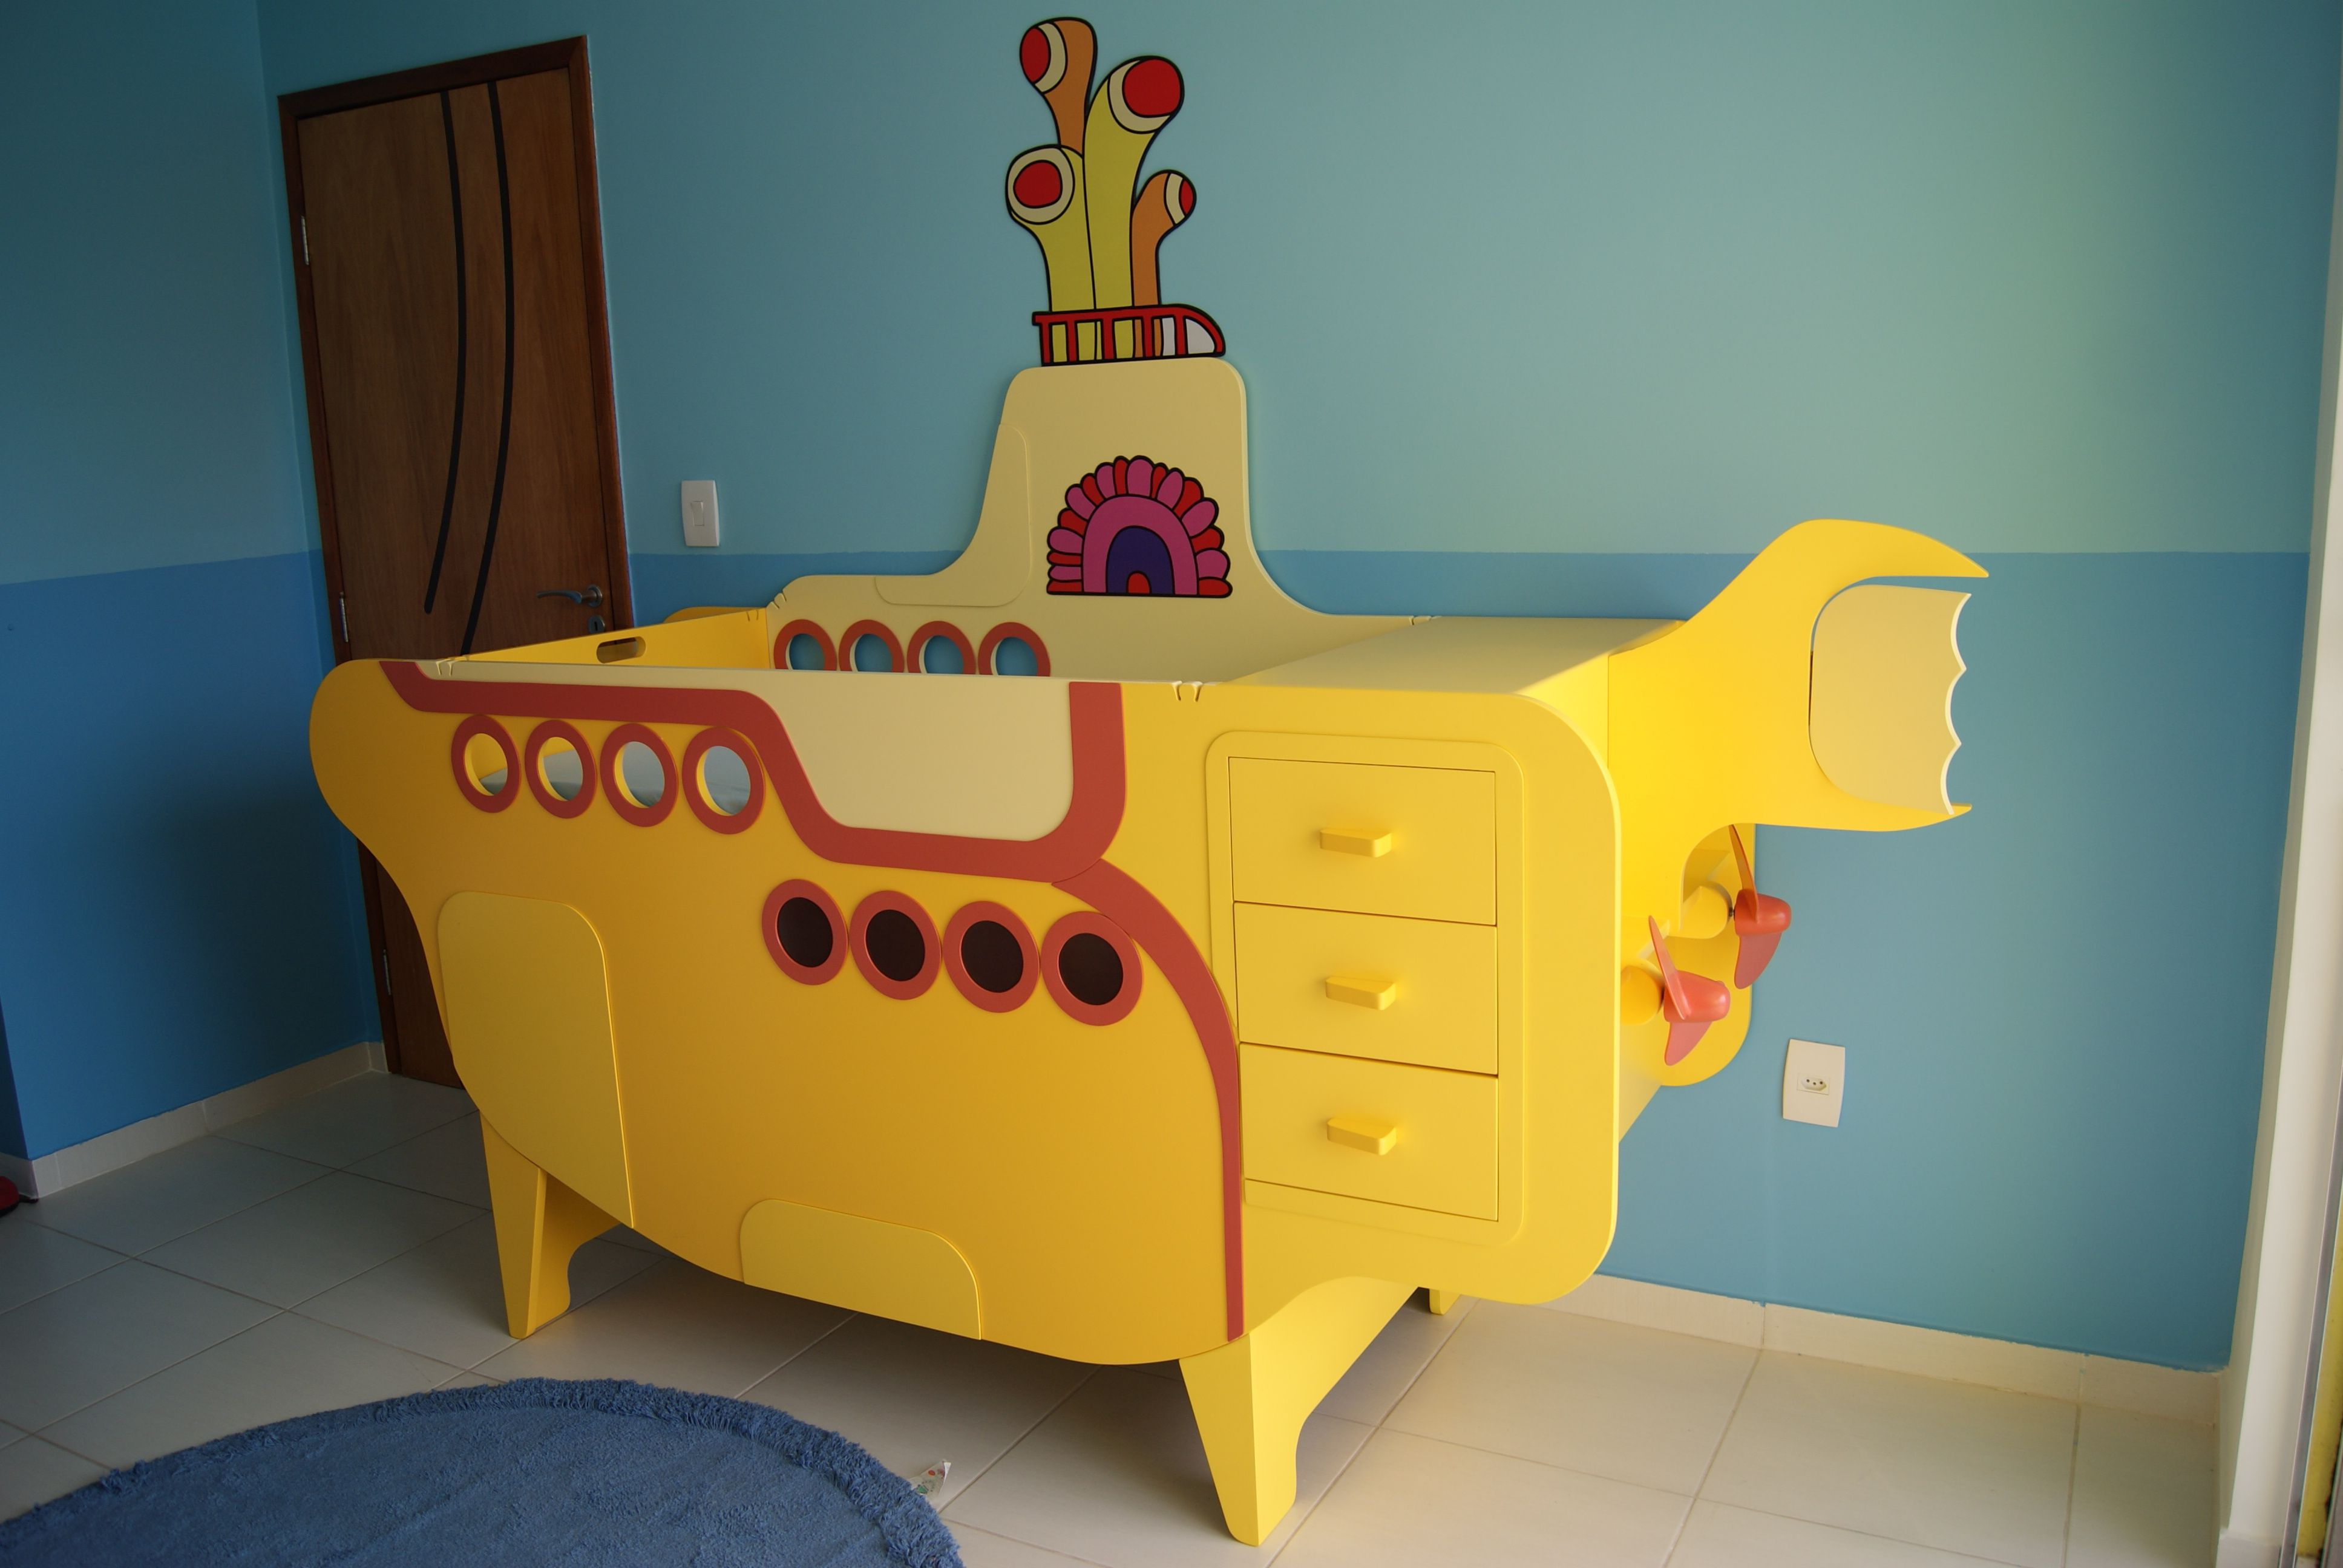 Baby crib yellow - Beatles Fans Might Find This Interesting A Yellow Submarine Crib I Built For A Happy